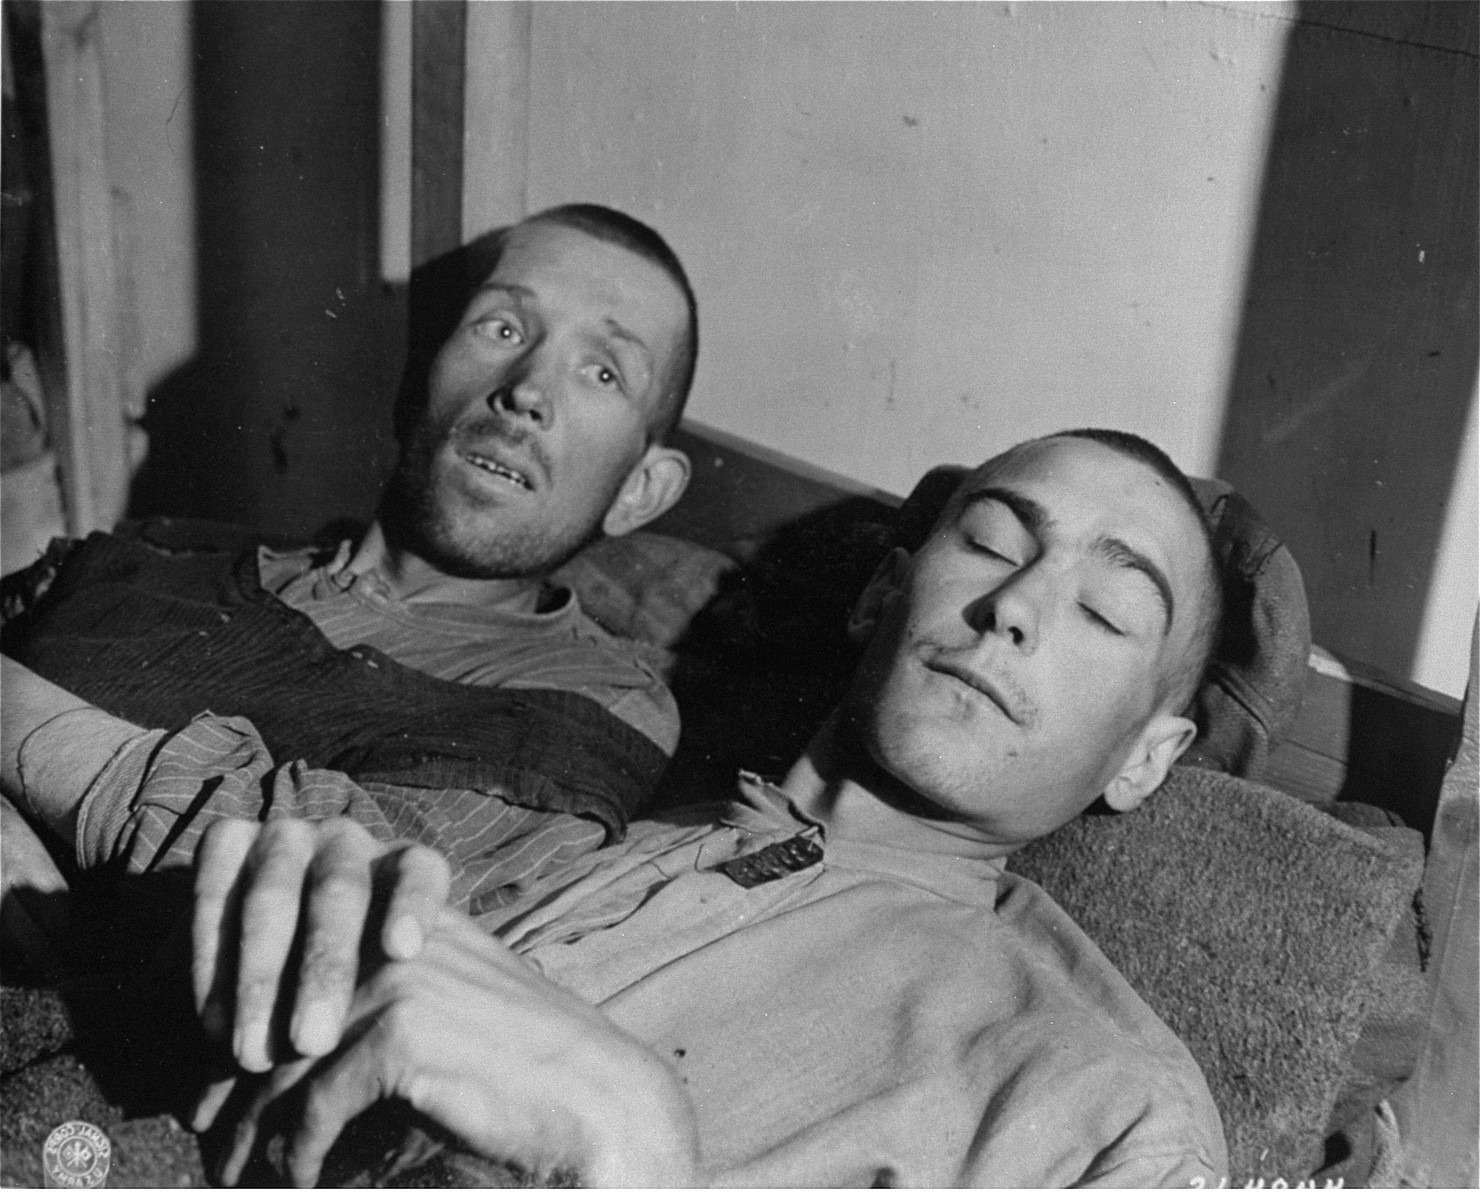 Two survivors rest on a bunk in the infirmary barracks for non-Jewish prisoners in the Ebensee concentration camp.